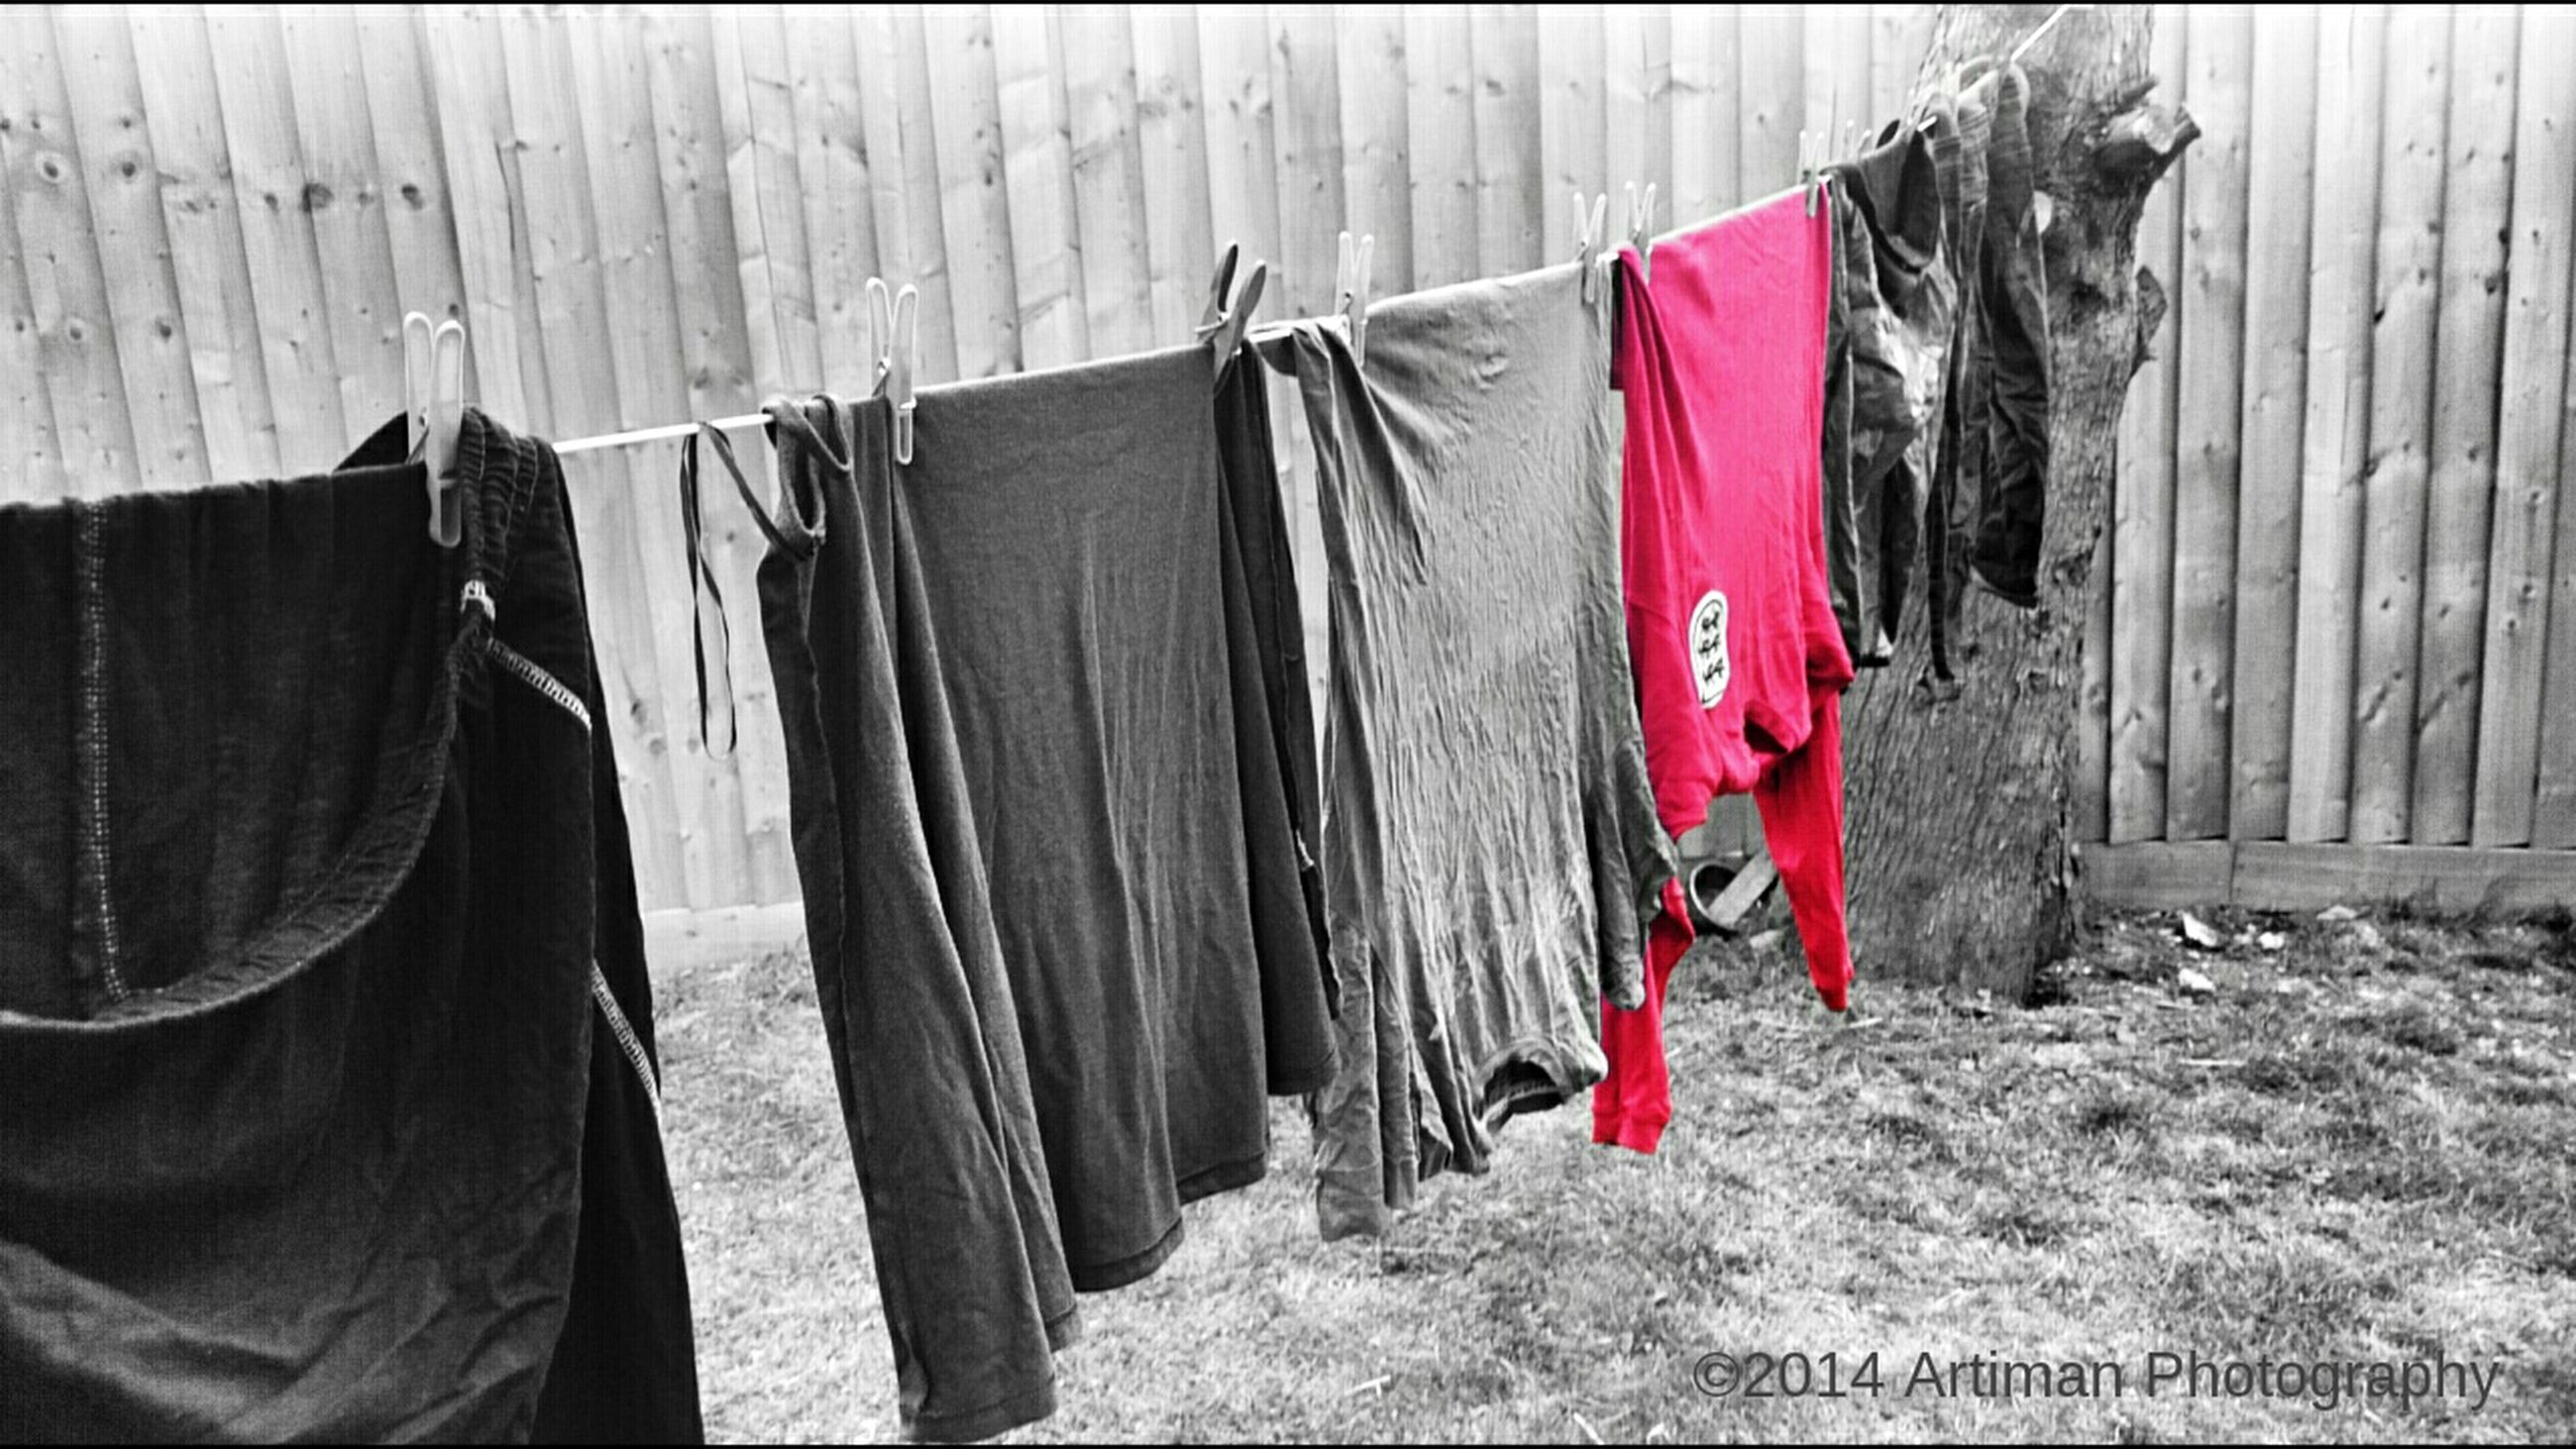 flag, building exterior, architecture, national flag, patriotism, built structure, identity, clothing, men, drying, hanging, graffiti, day, american flag, red, outdoors, protection, clothesline, rear view